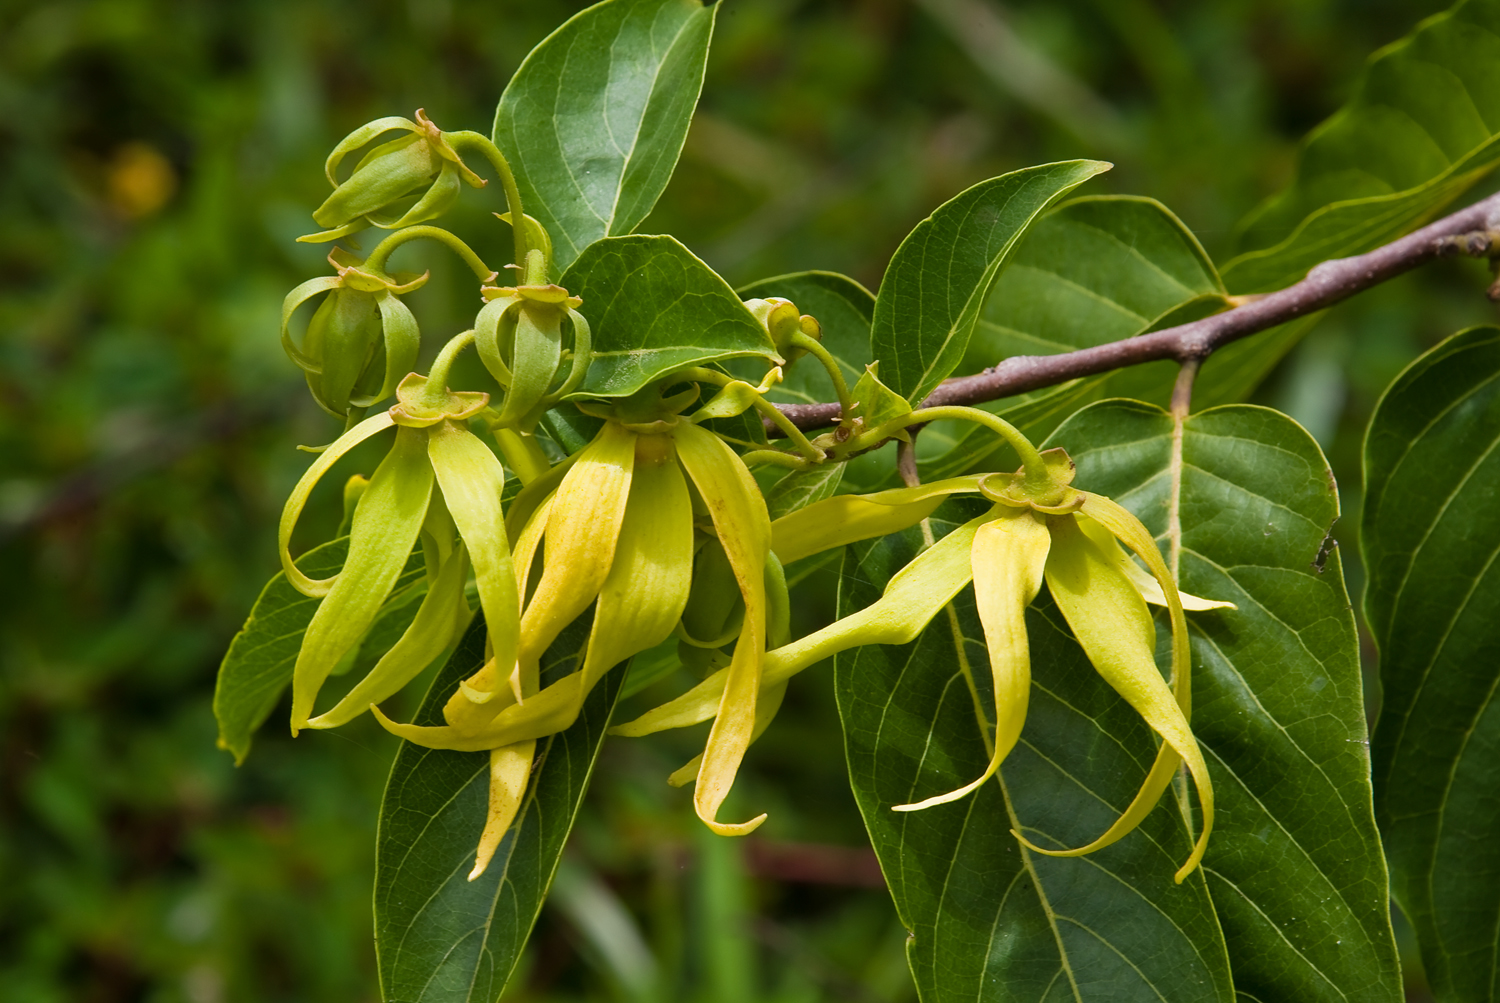 Ylang-Ylang flowers from Madagascar